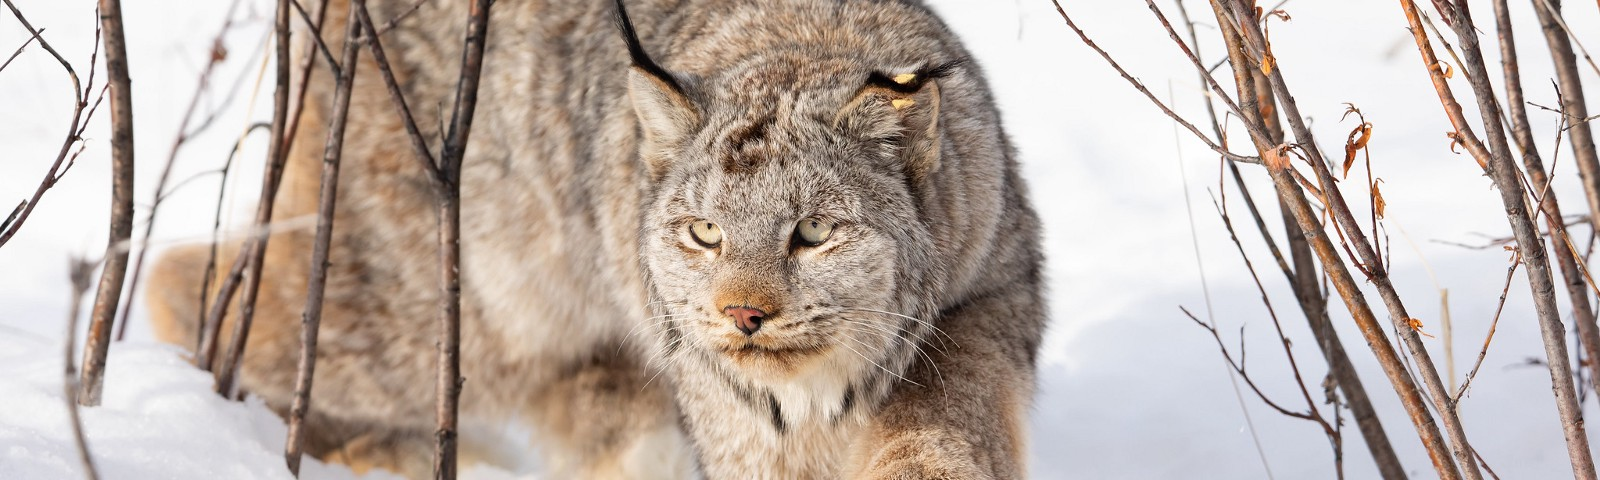 Canada lynx with large paws walking on atop snowy landscape